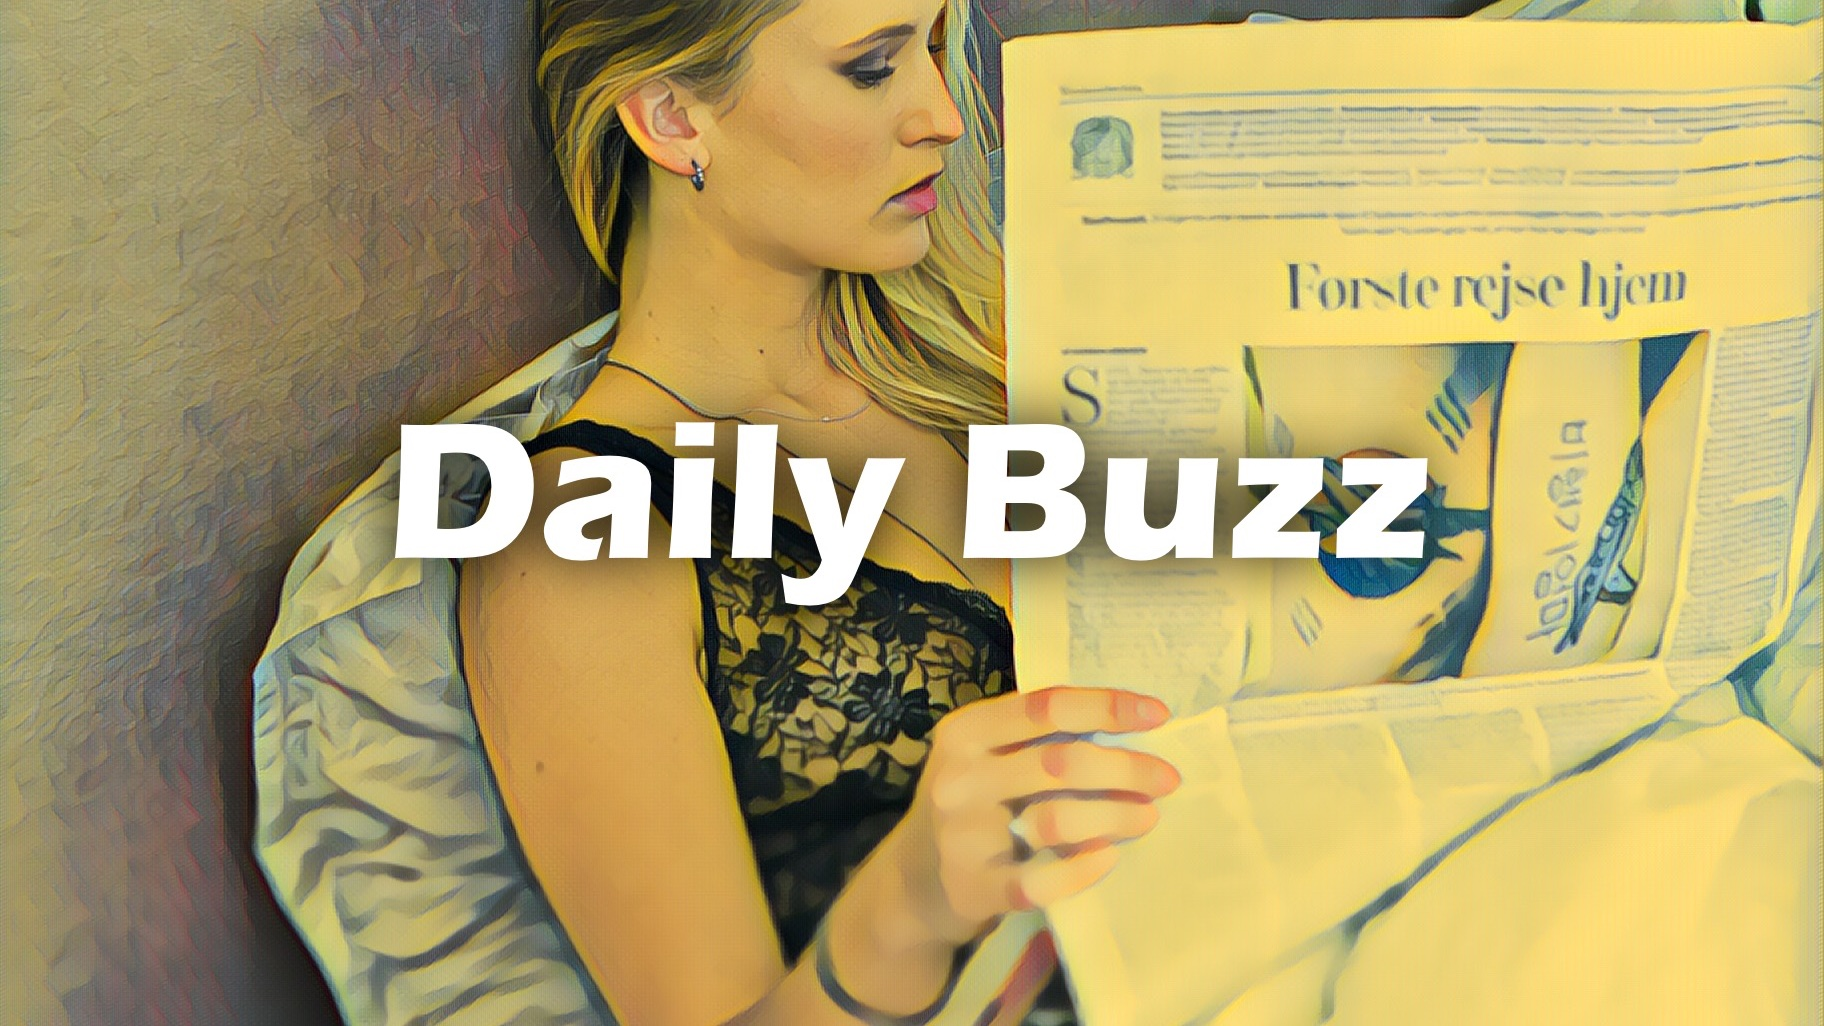 DailyBuzz Saturday 4 August 2018